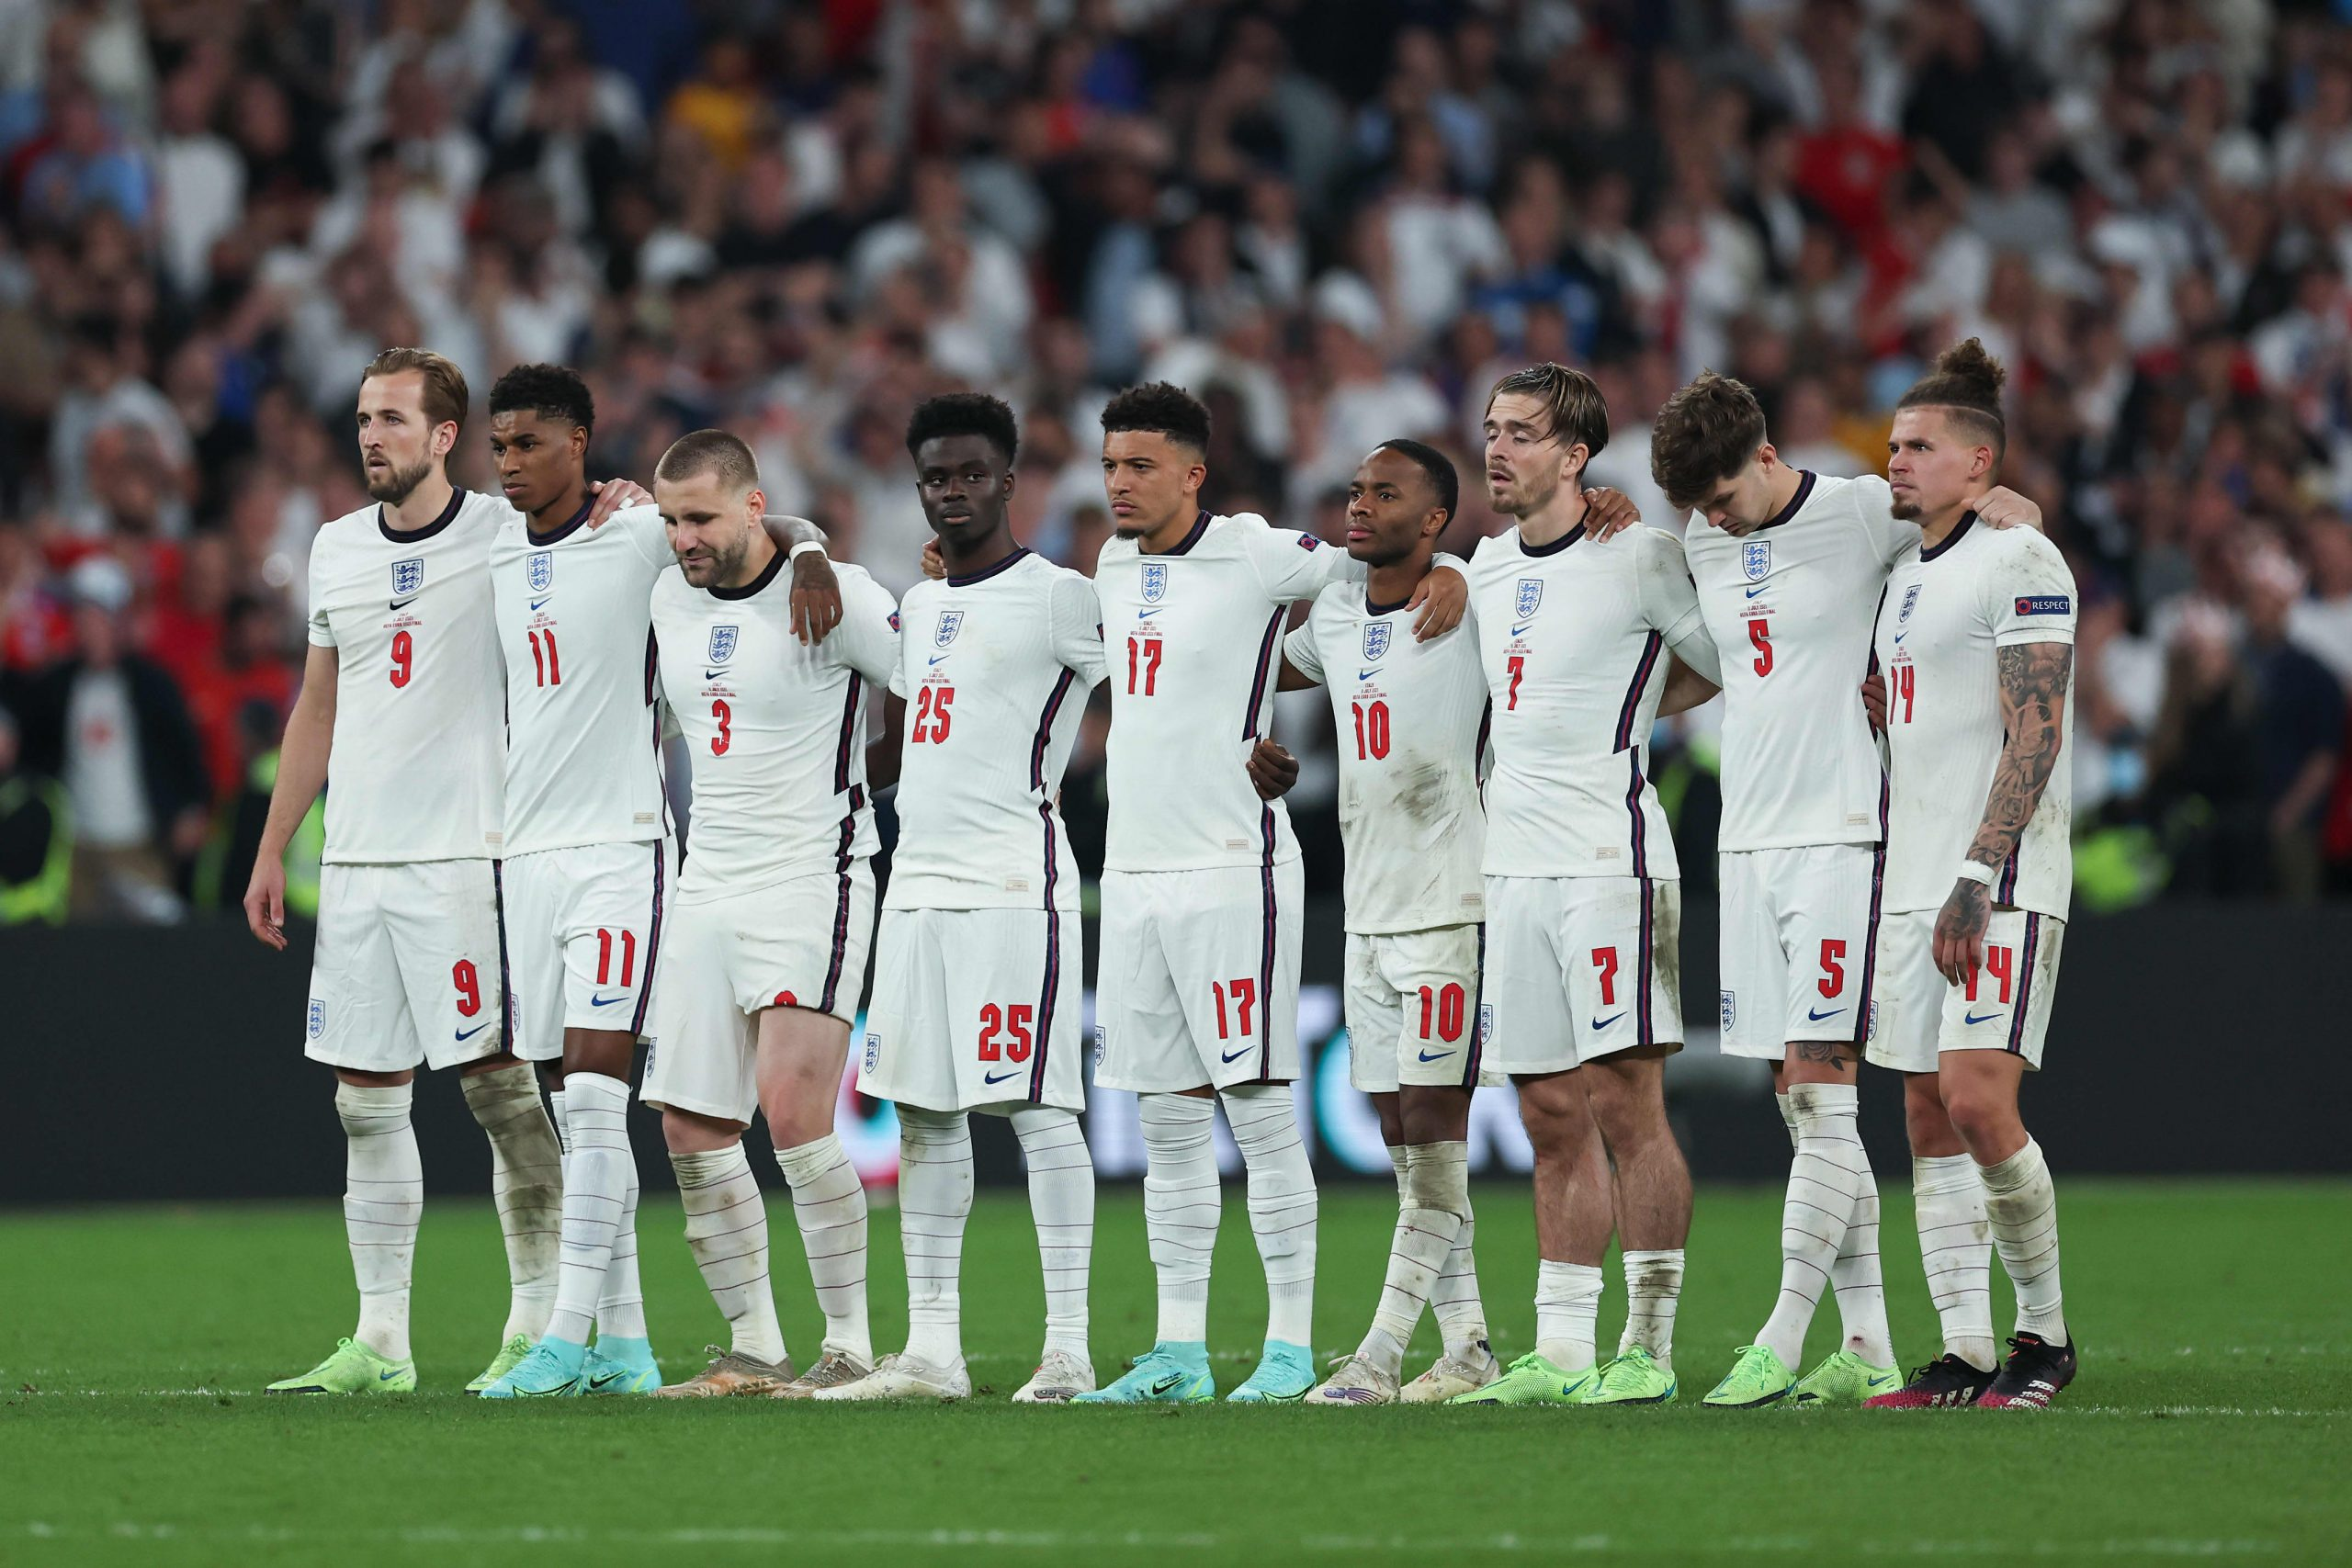 Facebook and Twitter under fire after England soccer players face racial abuse online